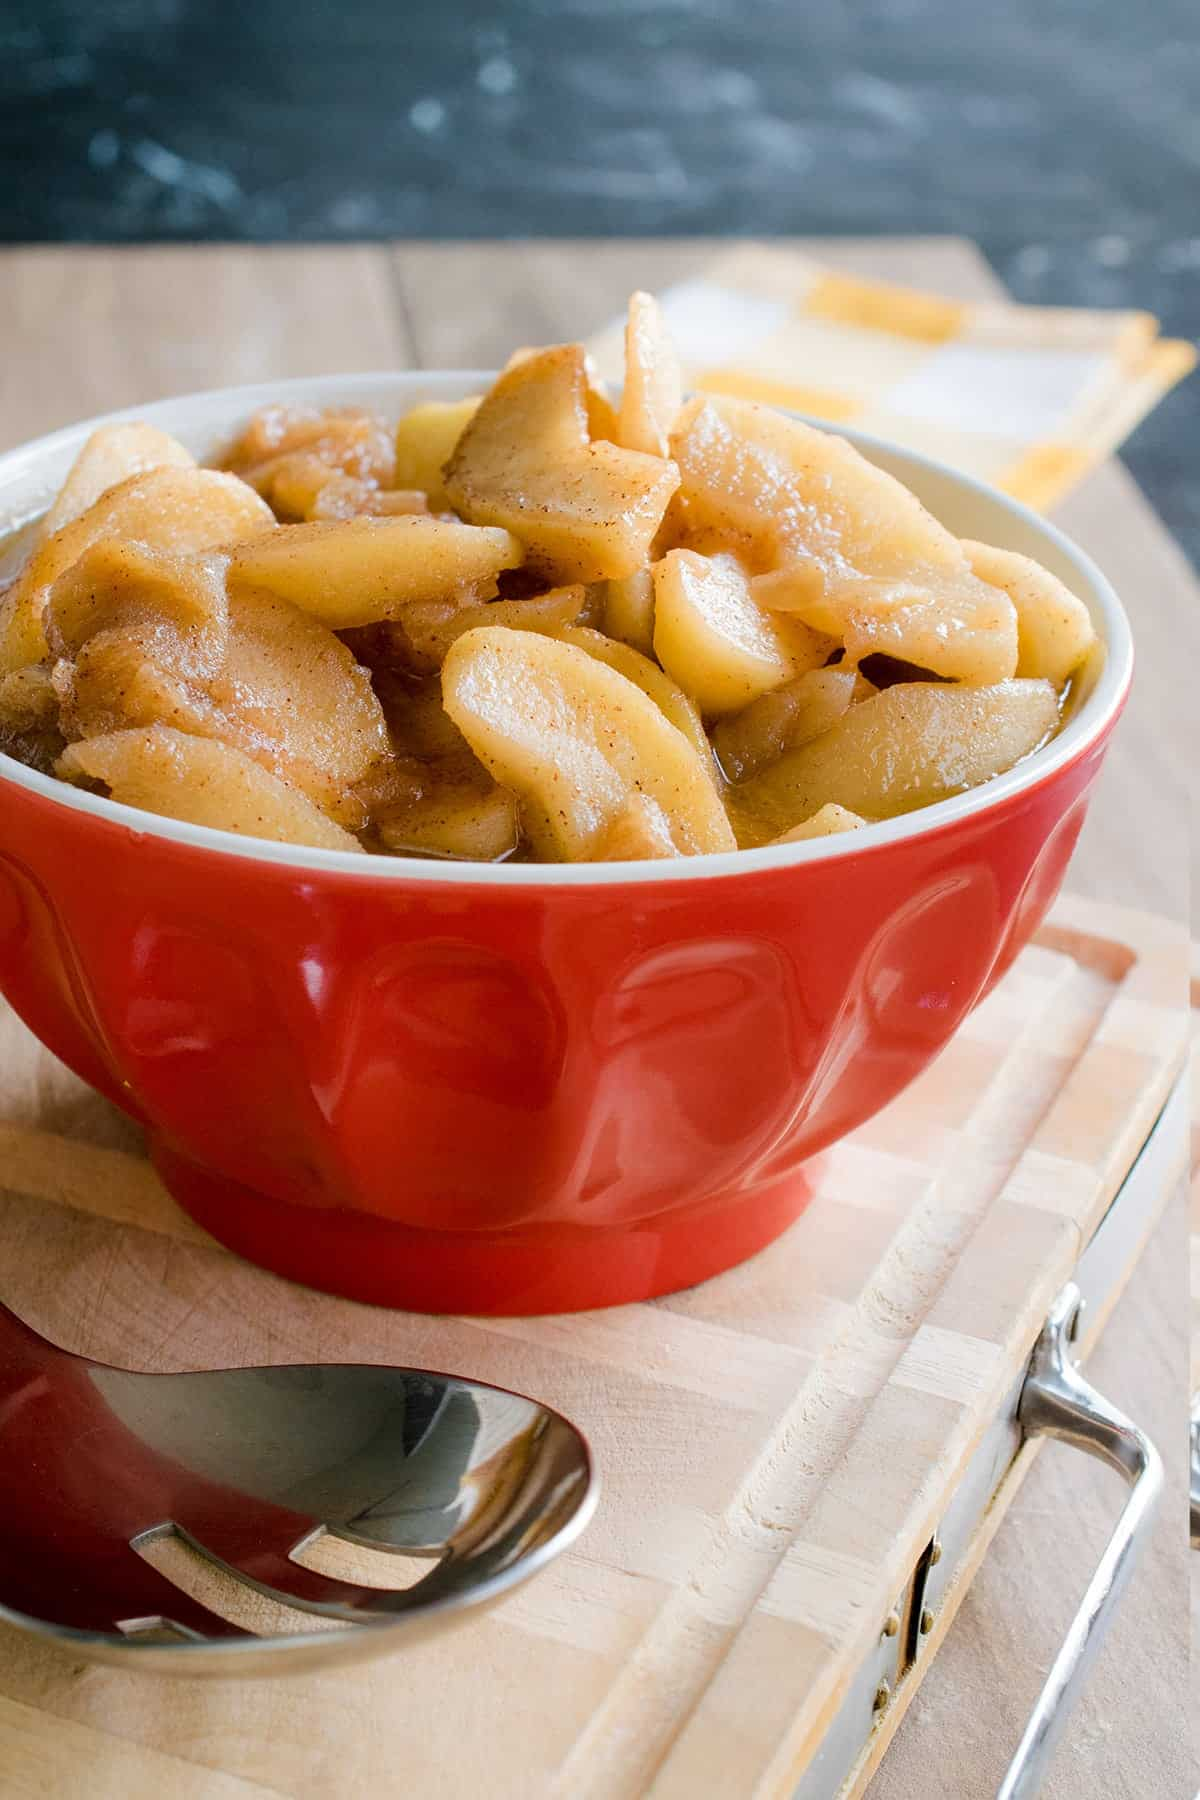 Southern fried apples with cinnamon in red serving bowl, a sweet and tangy southern tradition.